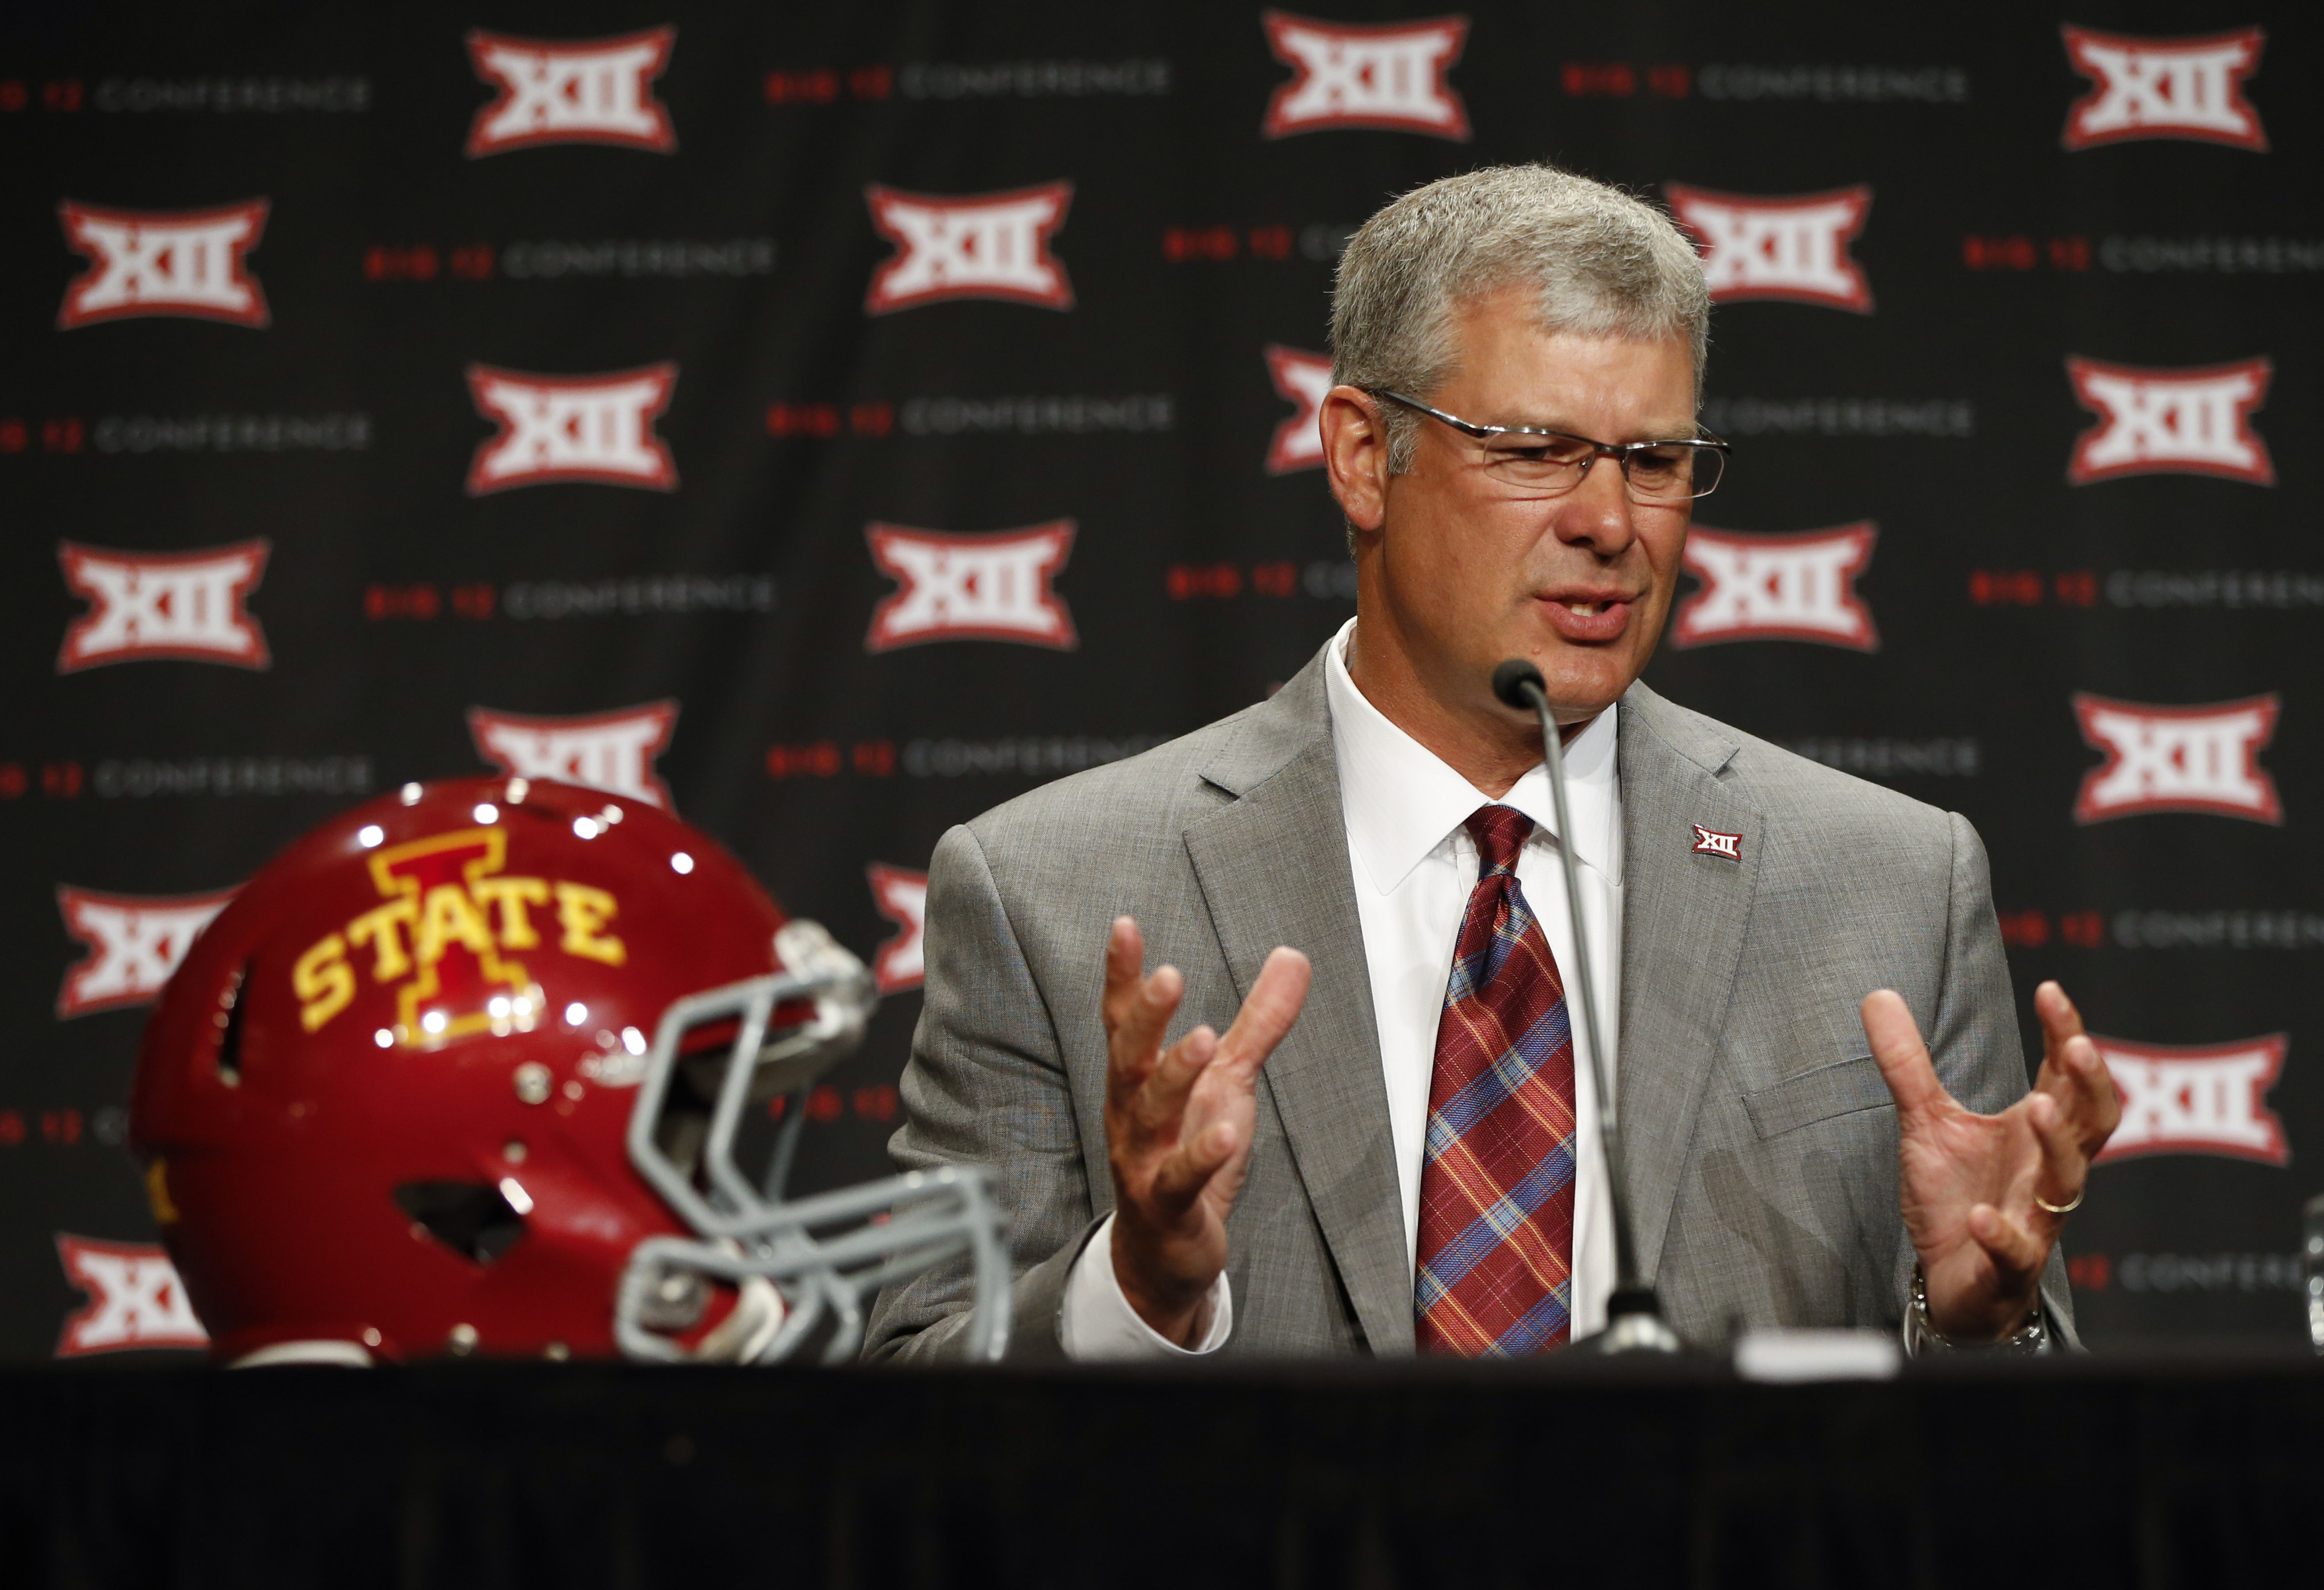 Paul Rhoads tells the media what it's like to use the bathroom after Mark Mangino.